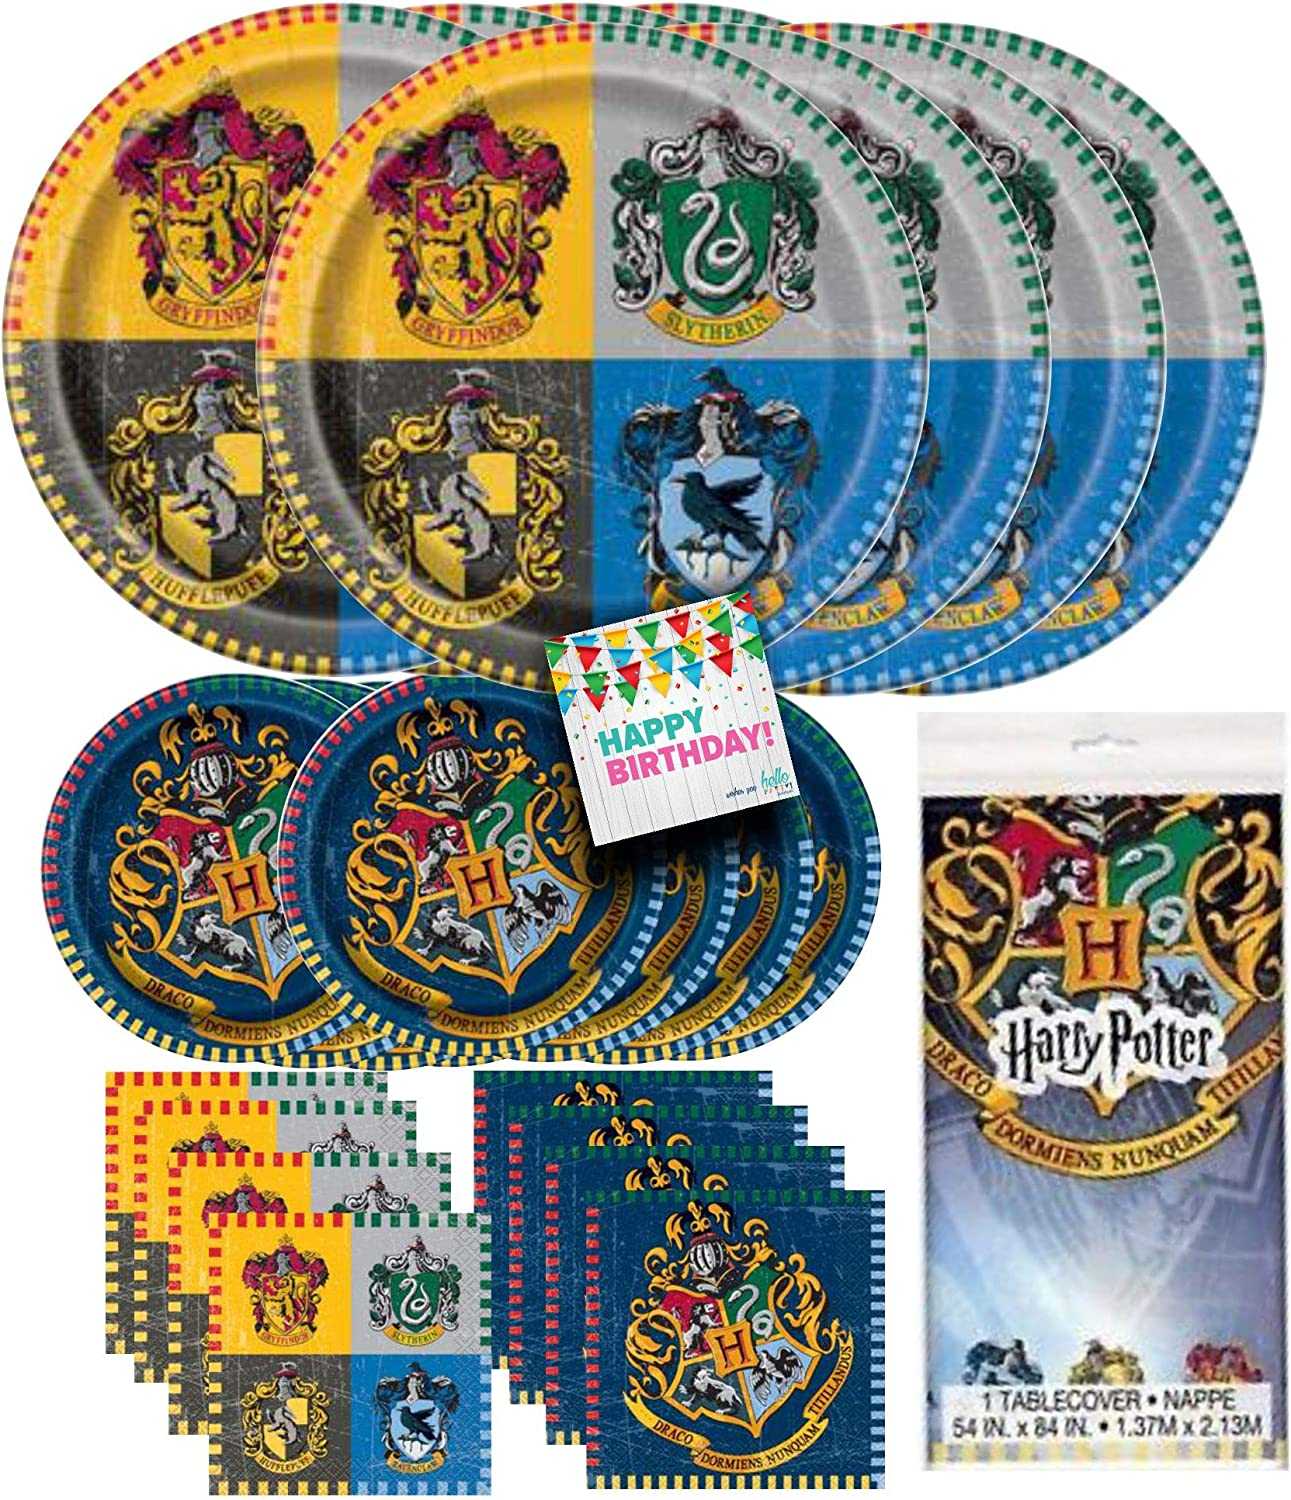 HELLO PARTY! Harry Potter Dinnerware Bundle party pack supplies - 16 luncheon Napkins, 16 beverage Napkins, 8 dinner Plates, 8 dessert plates, Tableware, for Kid's Birthday Party, Cartoon Themed Event